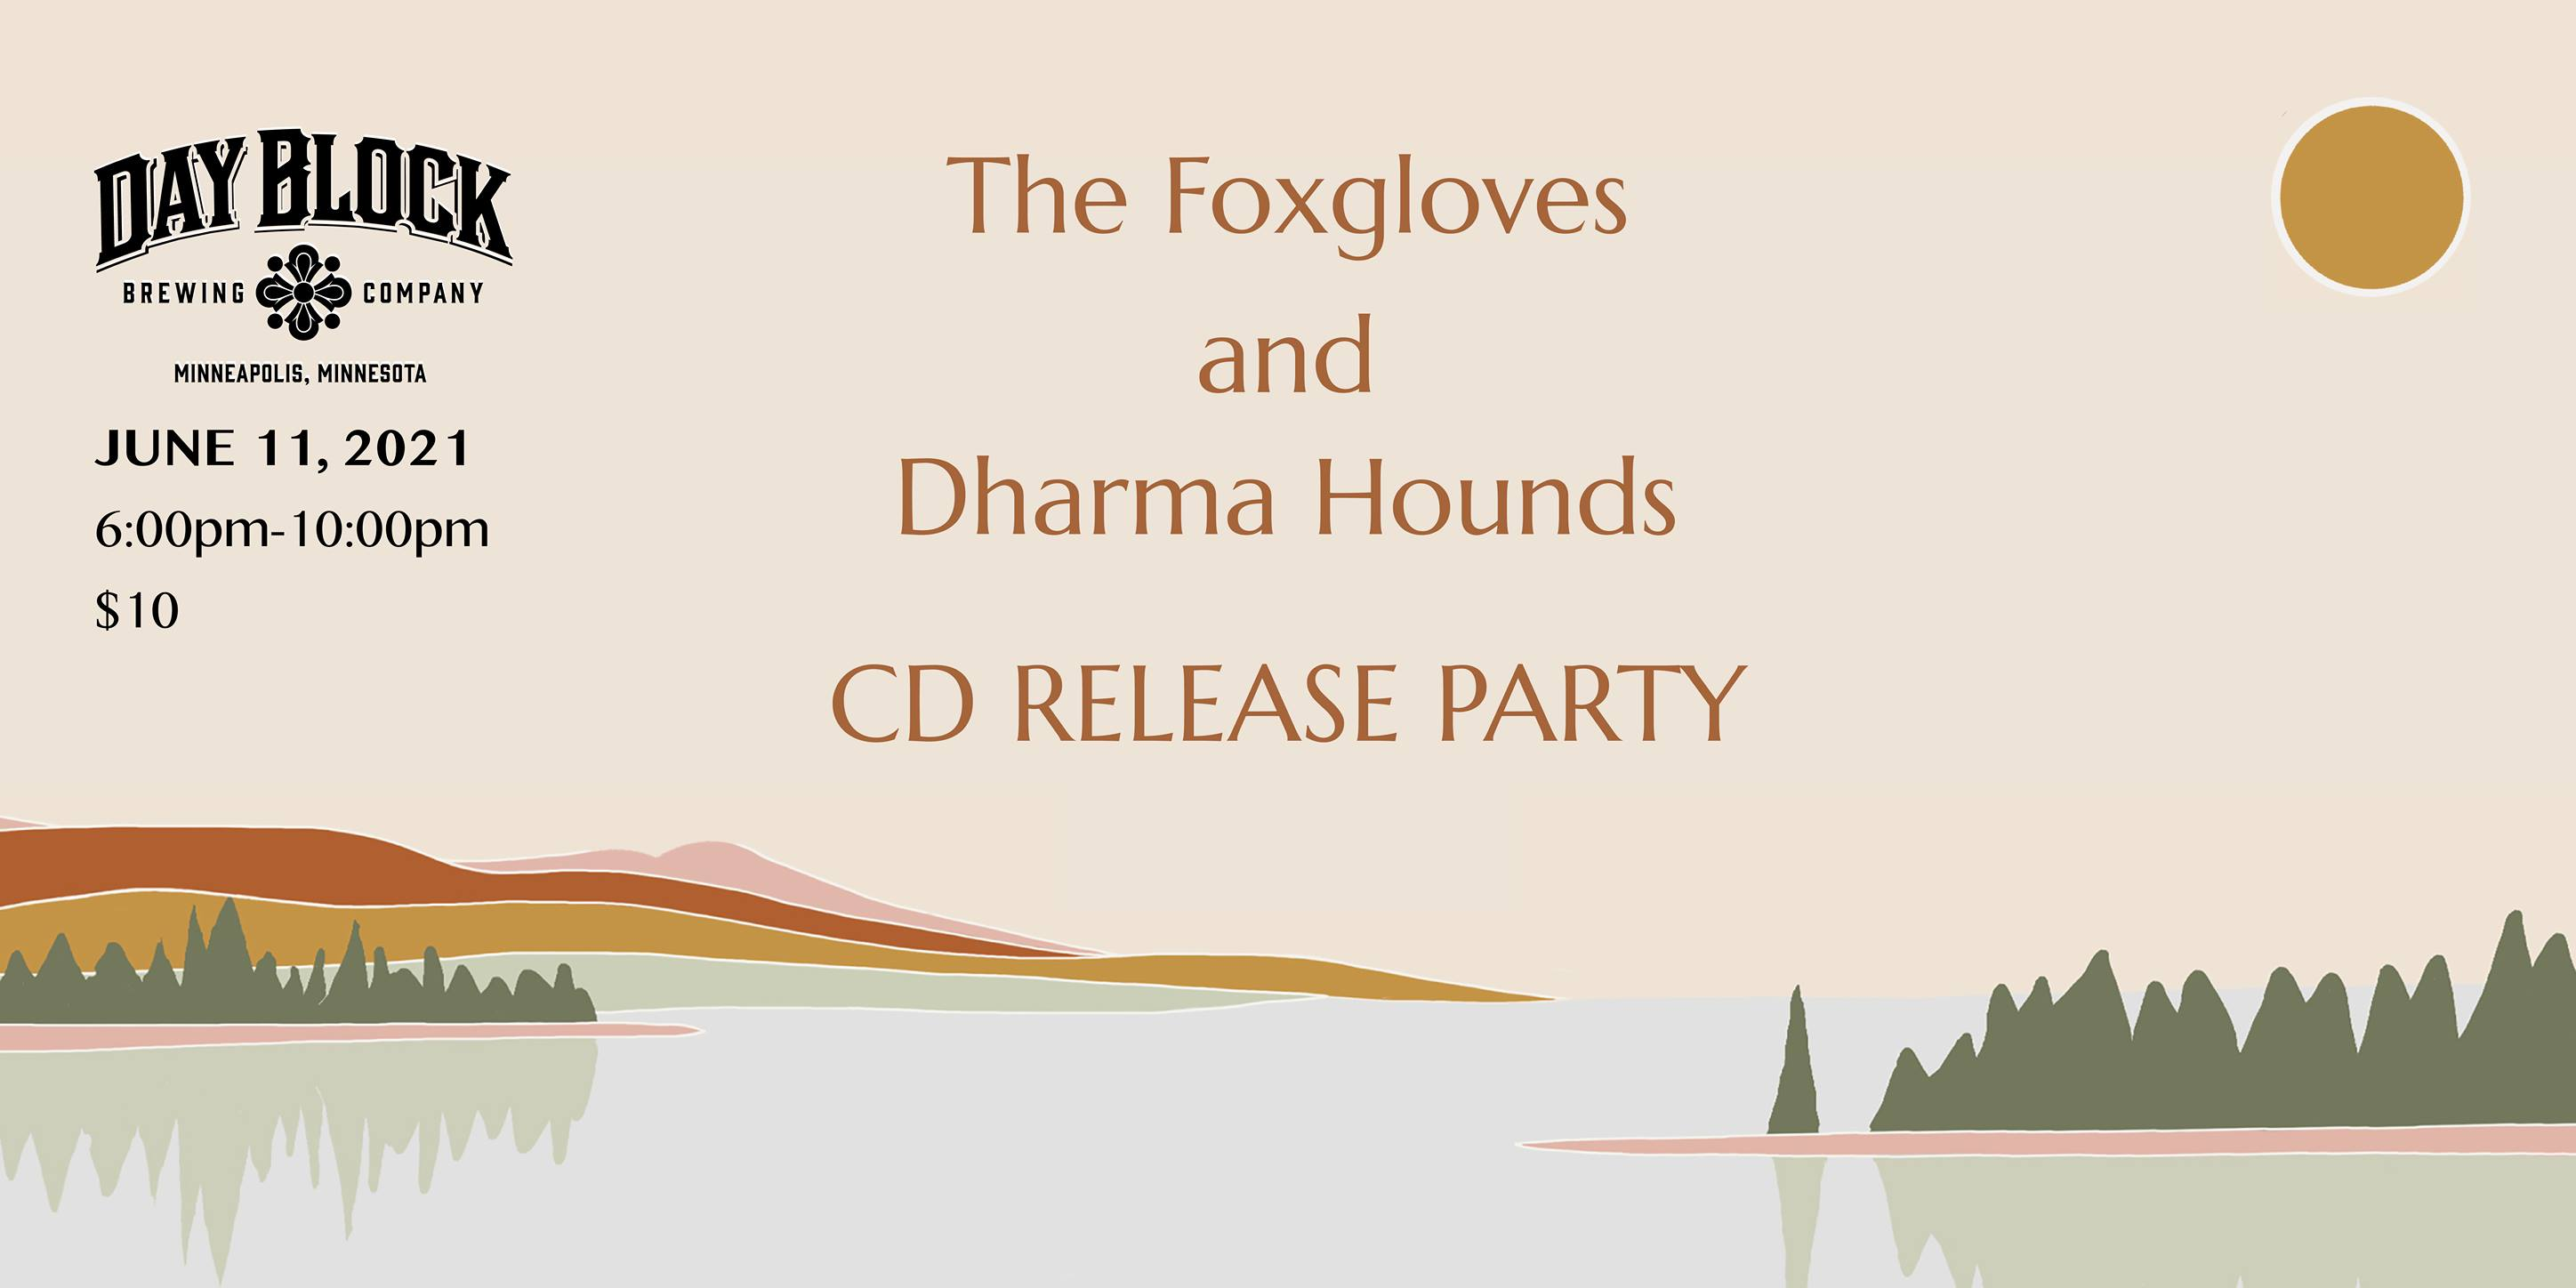 The Foxgloves and Dharma Hounds CD Release Party